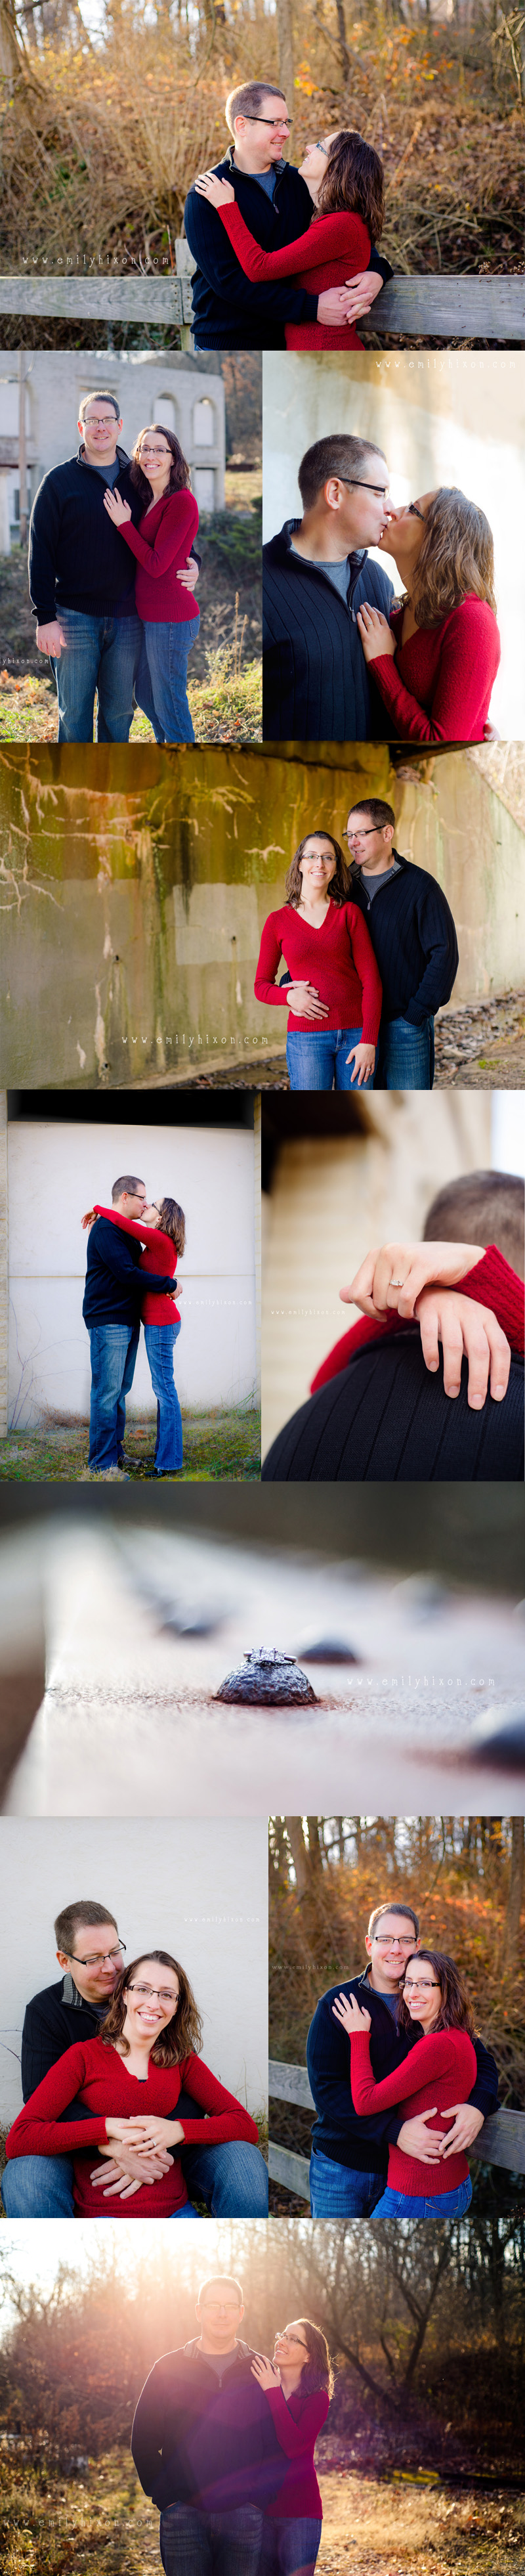 pittsburgh-engagement-photographer-emilyhixonphotography